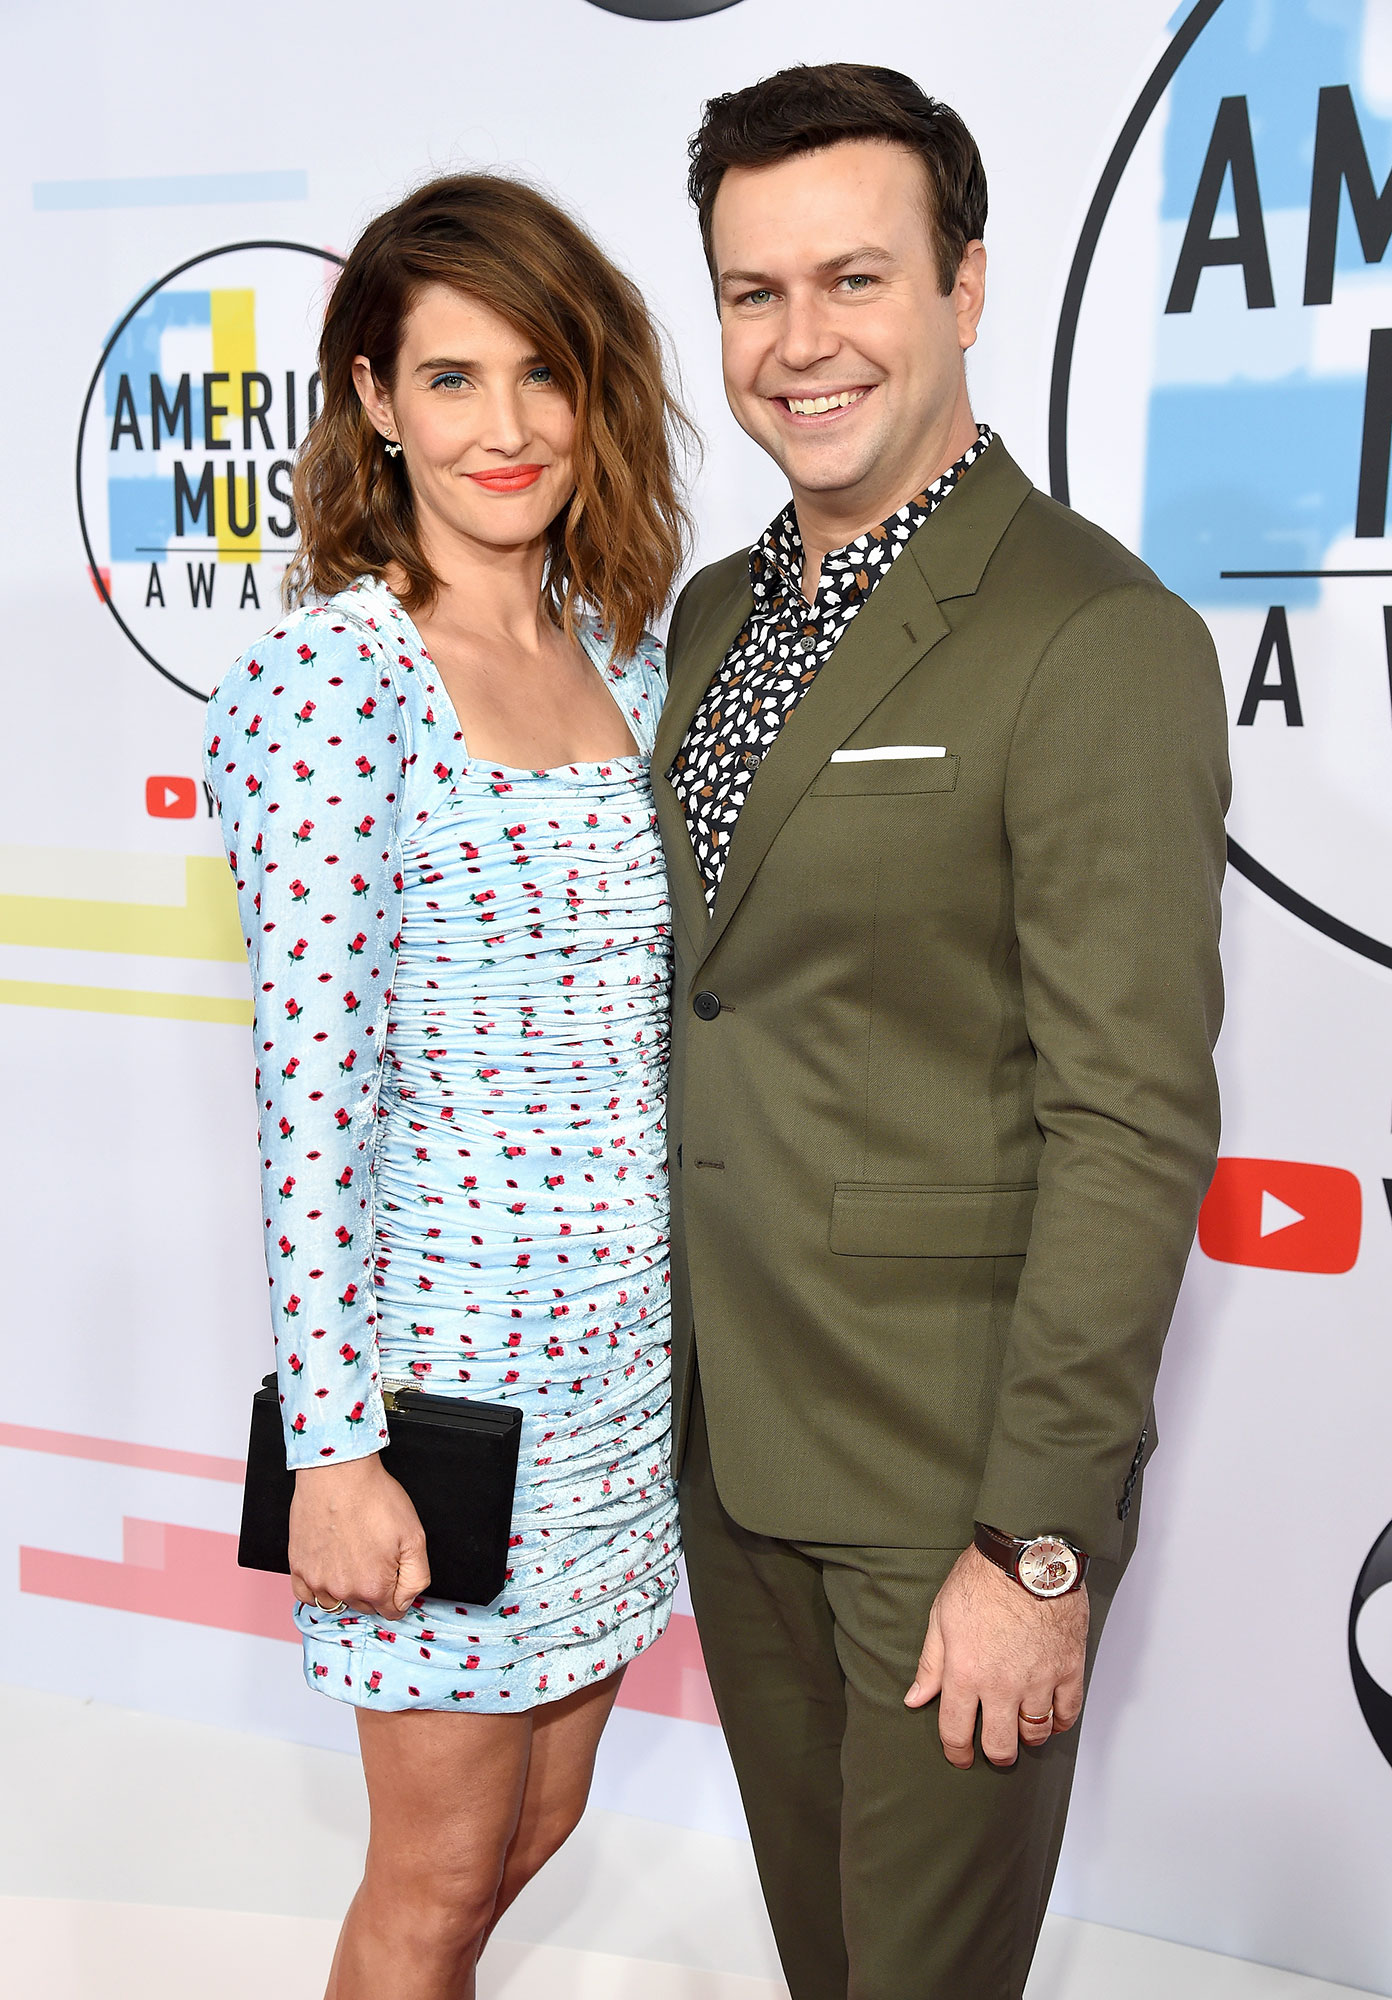 Taran Killam Reveals How and Where He and Wife Cobie Smulders 'Fell in Love' - Cobie Smulders (L) and Taran Killam attend the 2018 American Music Awards at Microsoft Theater on October 9, 2018 in Los Angeles, California.